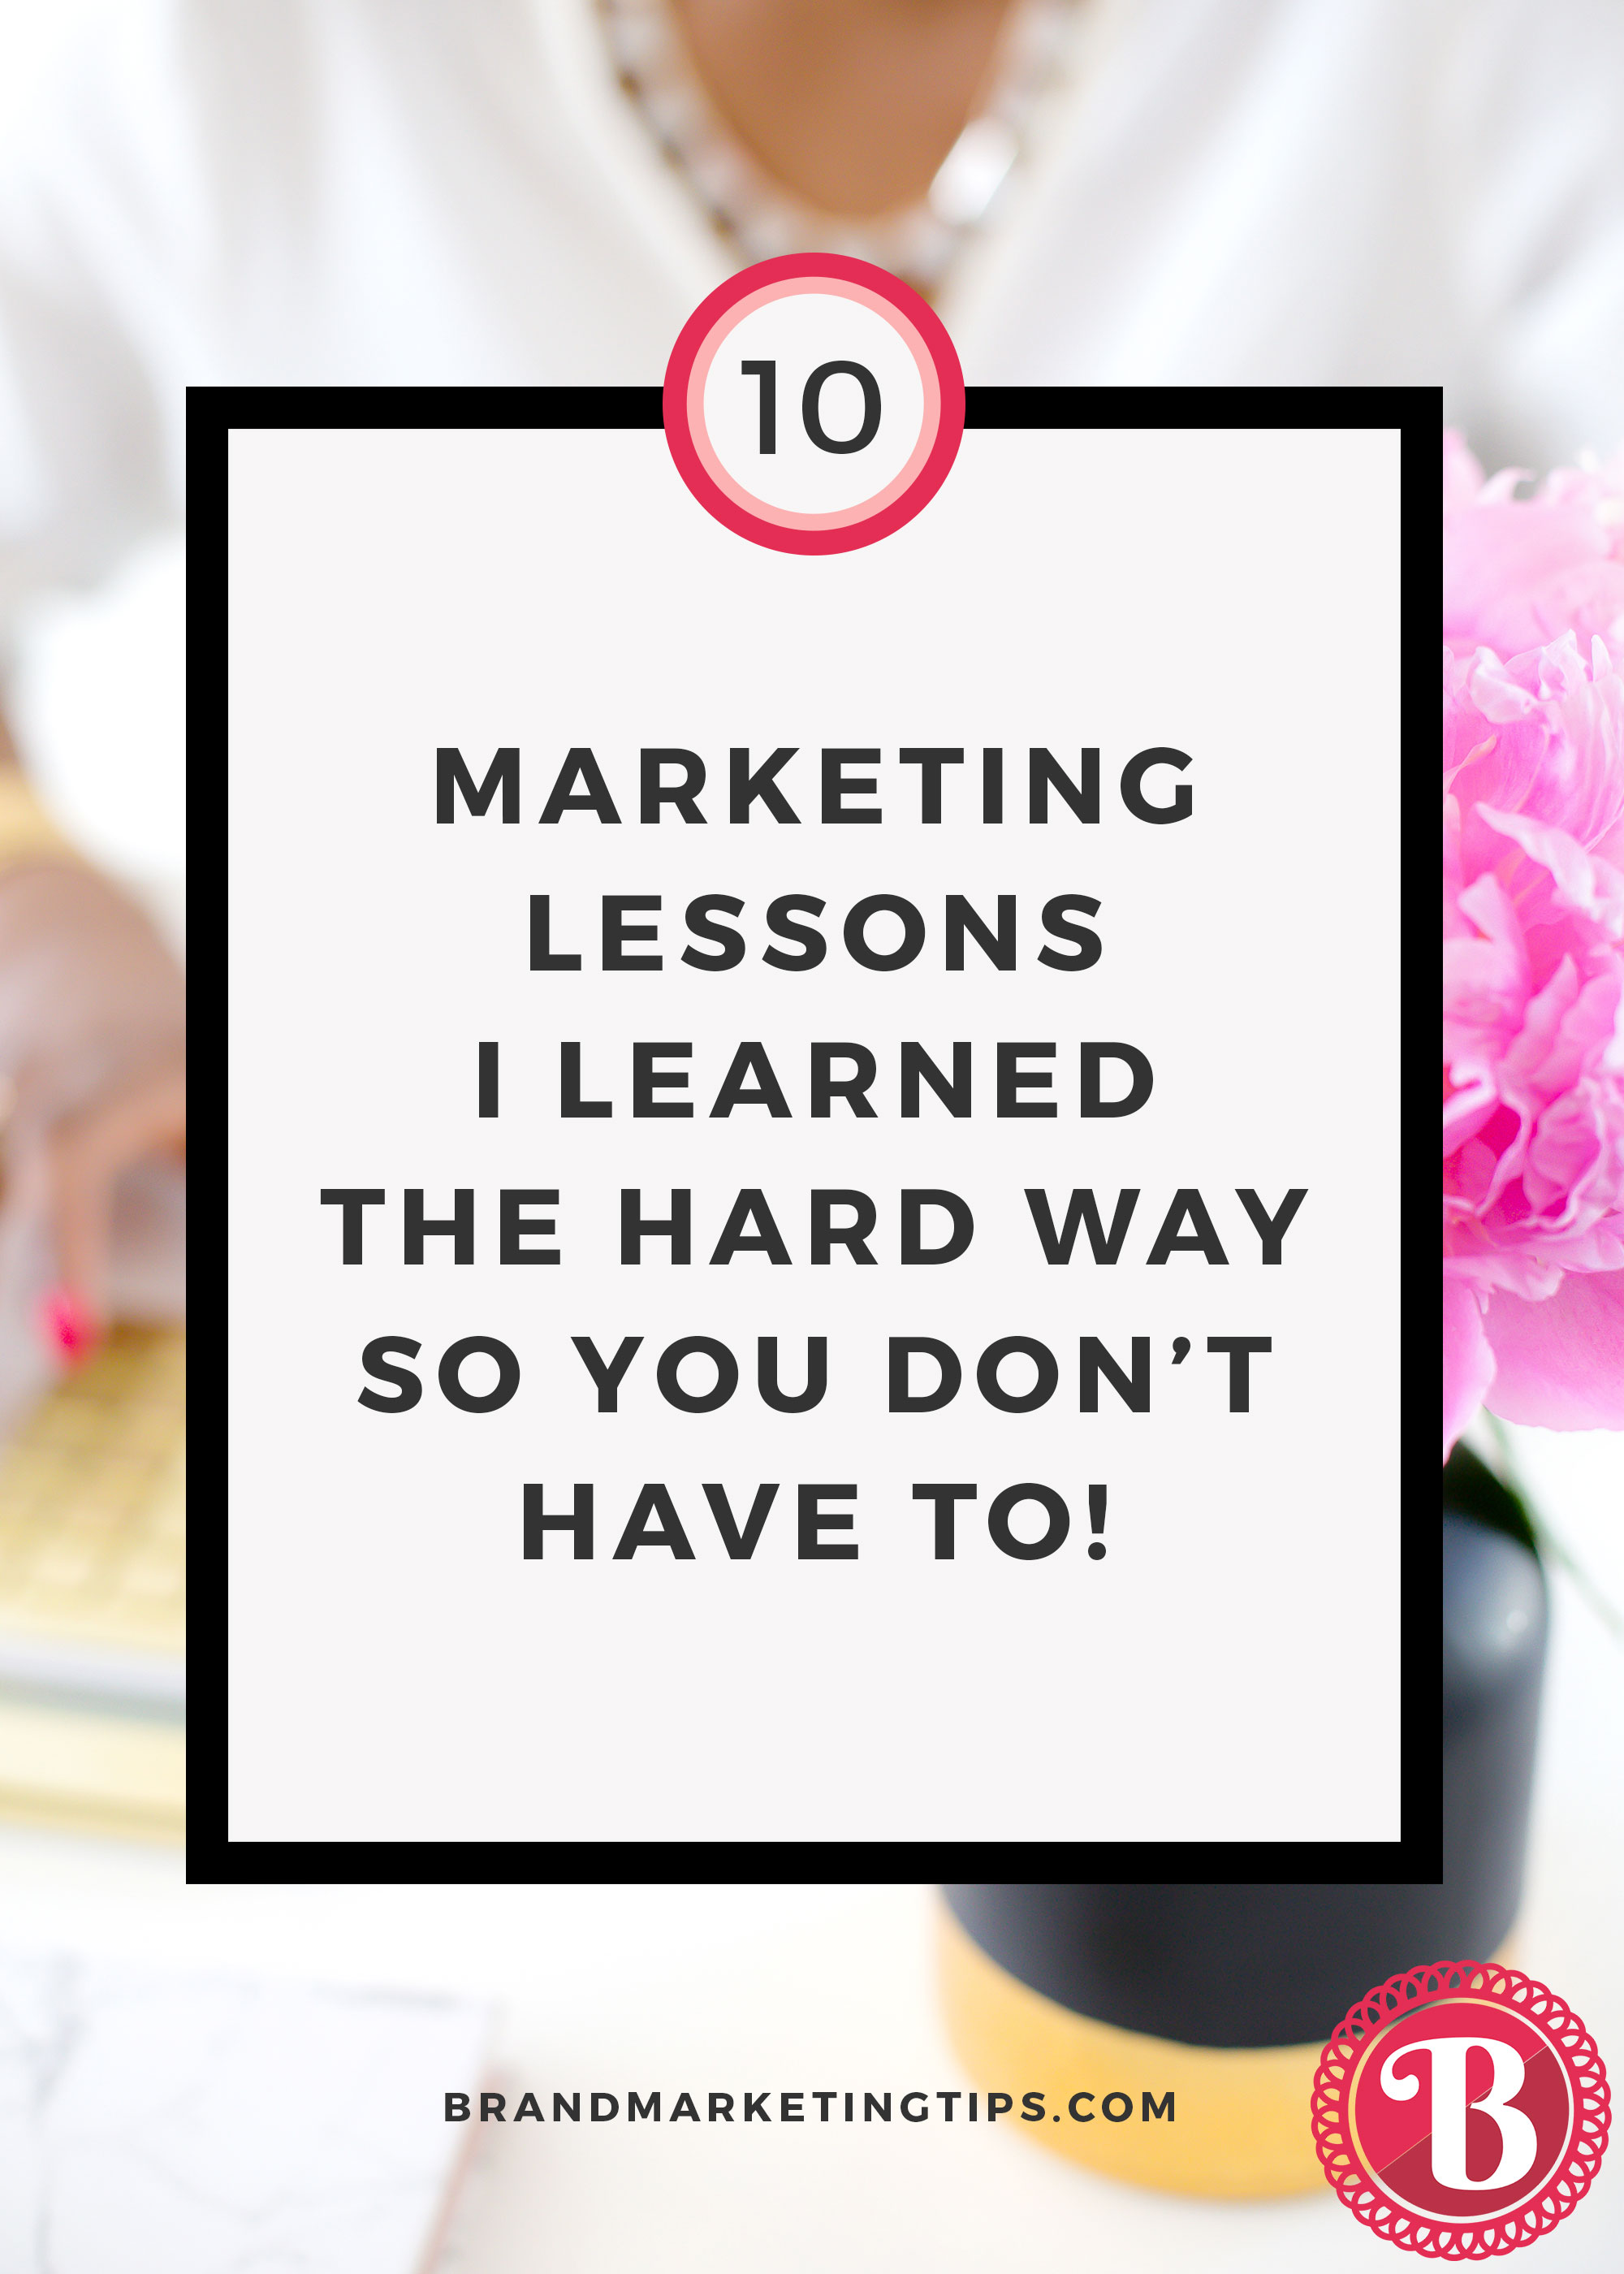 10 Marketing Lessons I Learned the Hard Way